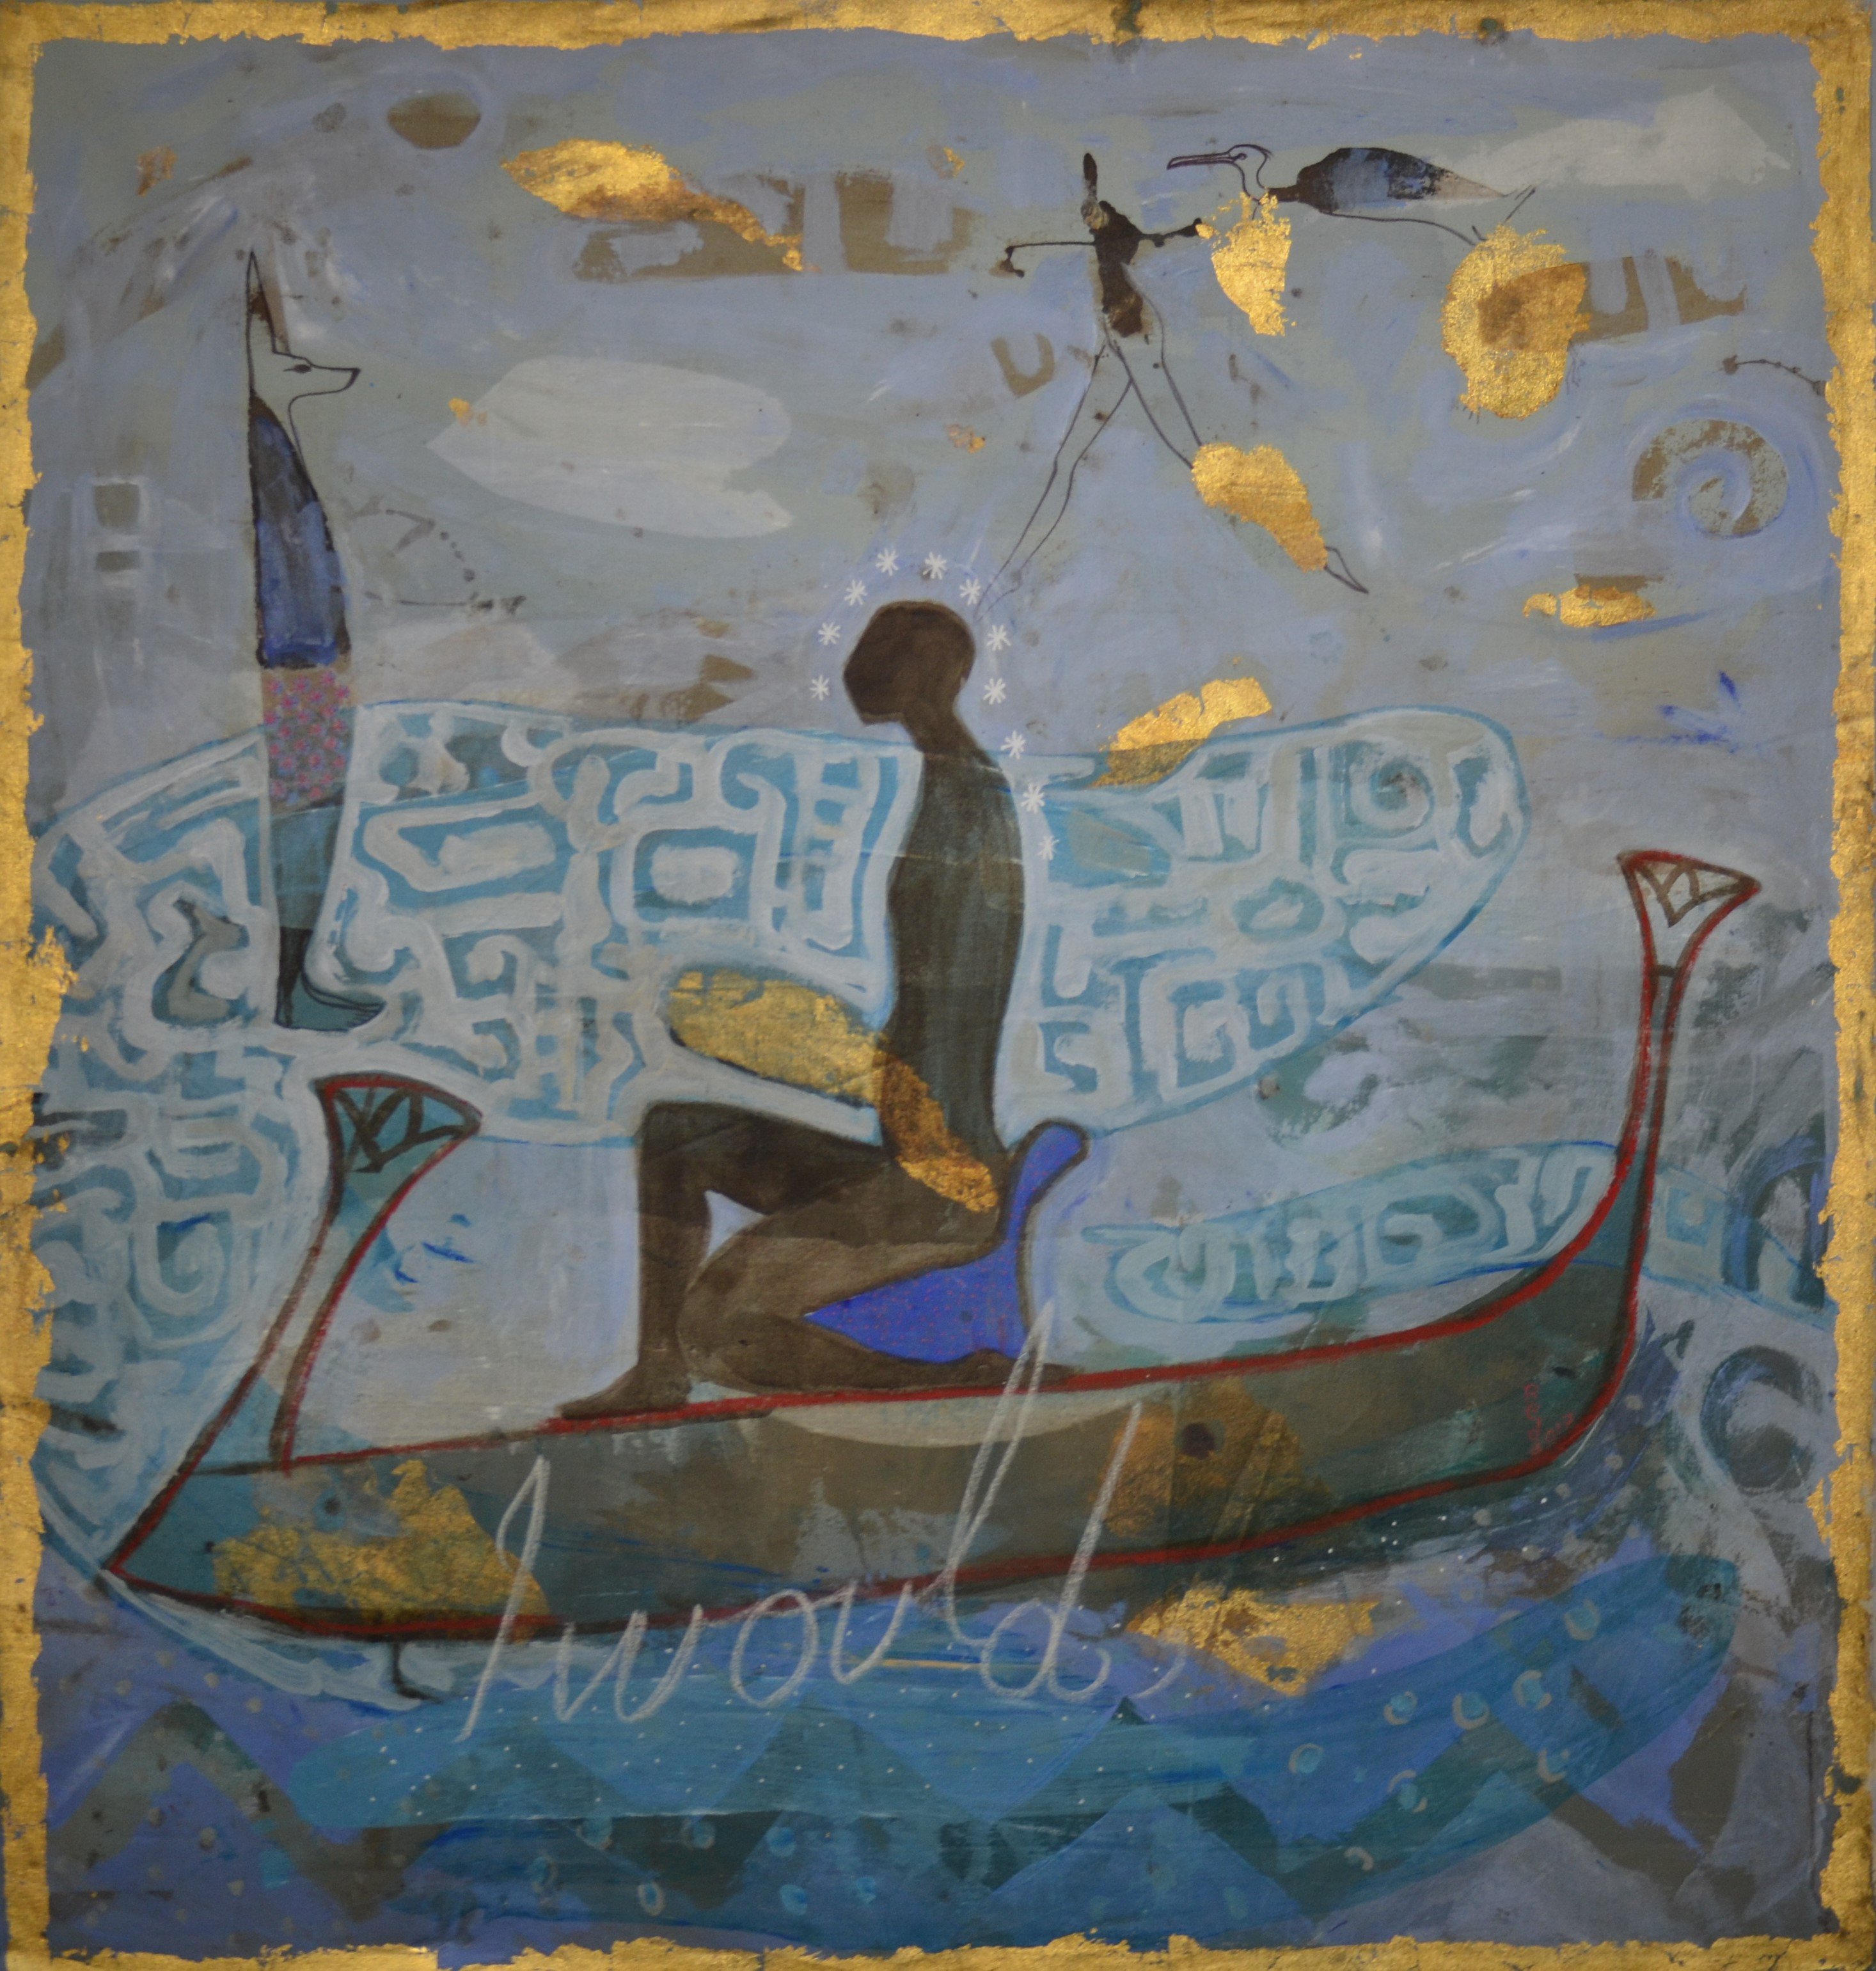 Ramble between The Nile and Hudson acrylic, tempera and gold leaf 55 x 52 Inch, 2017